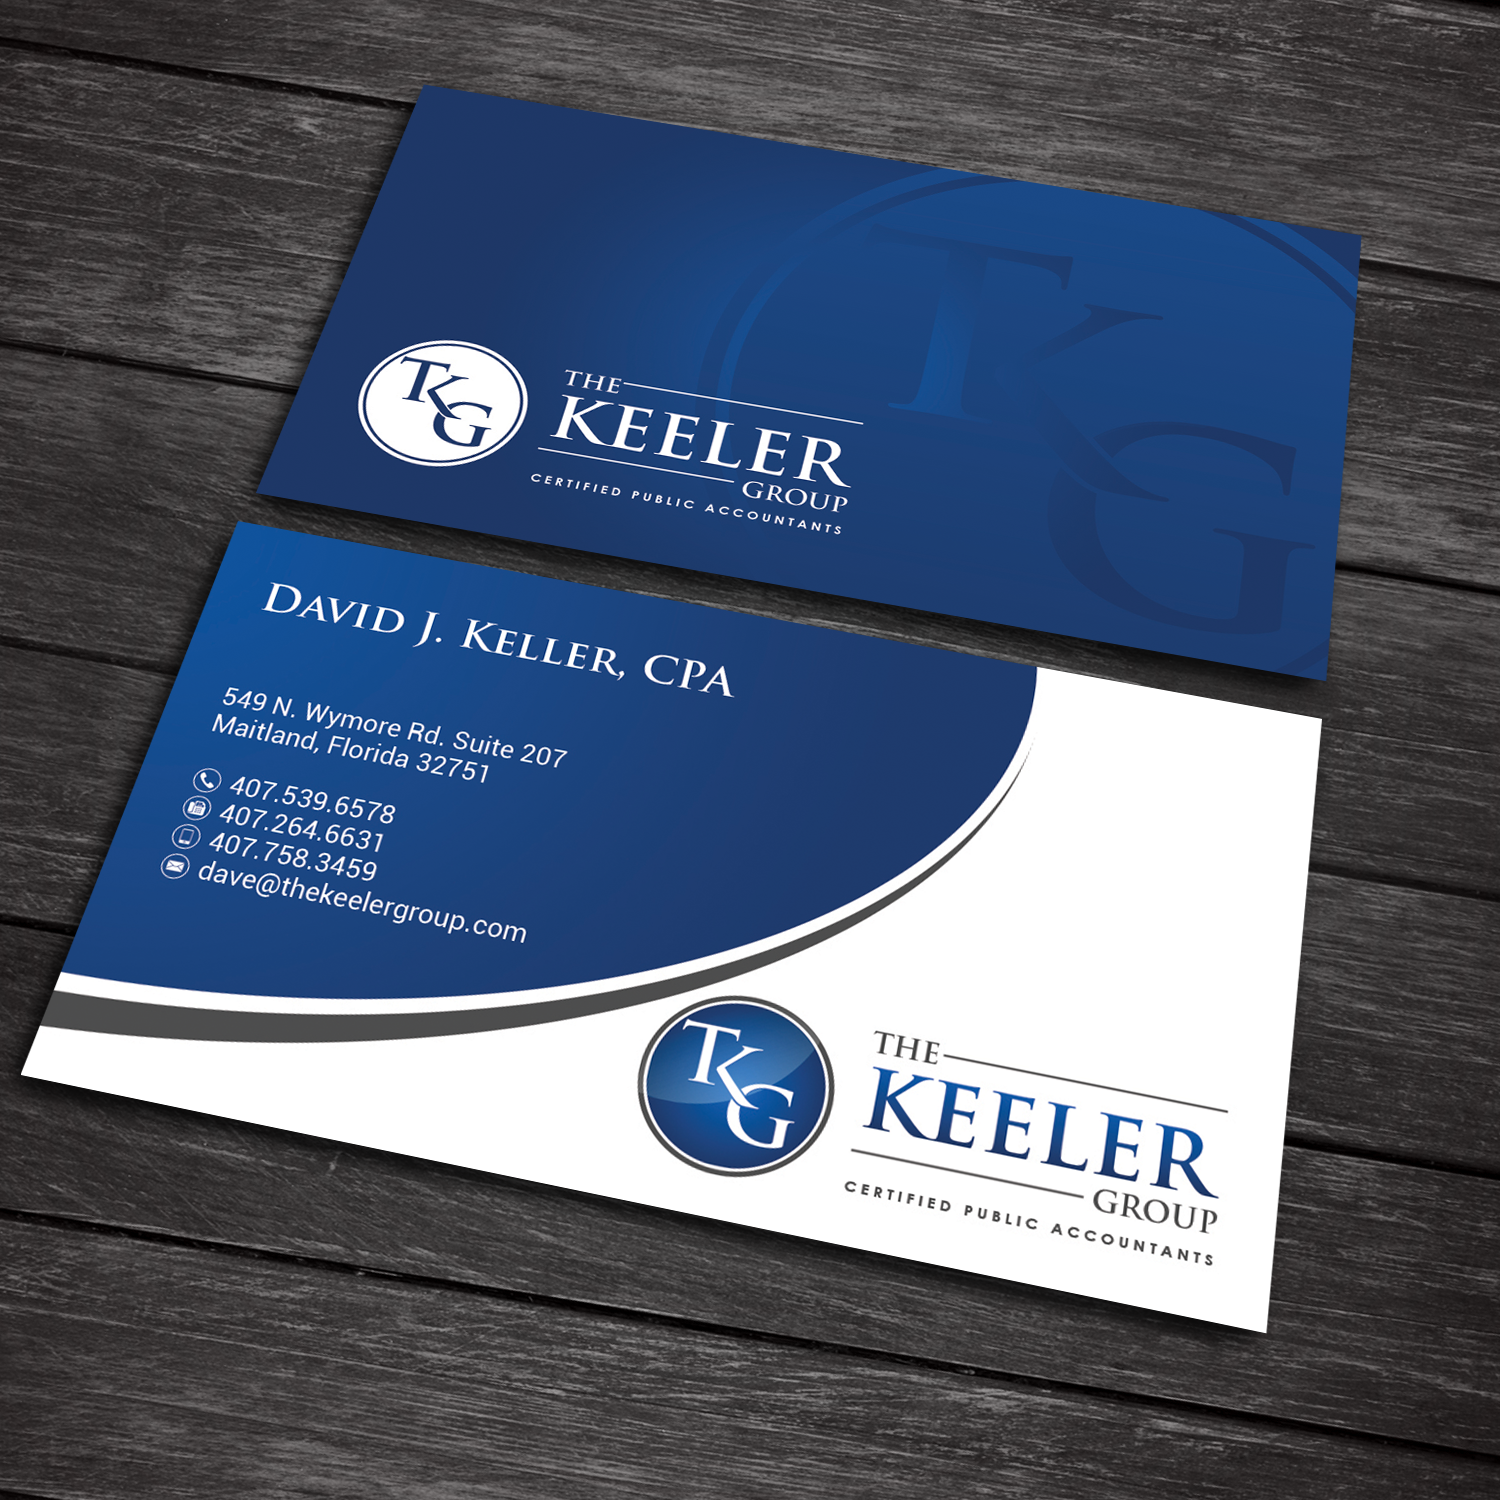 bold professional accountant business card design for the keeler group in united states design 15445568 - Accountant Business Card